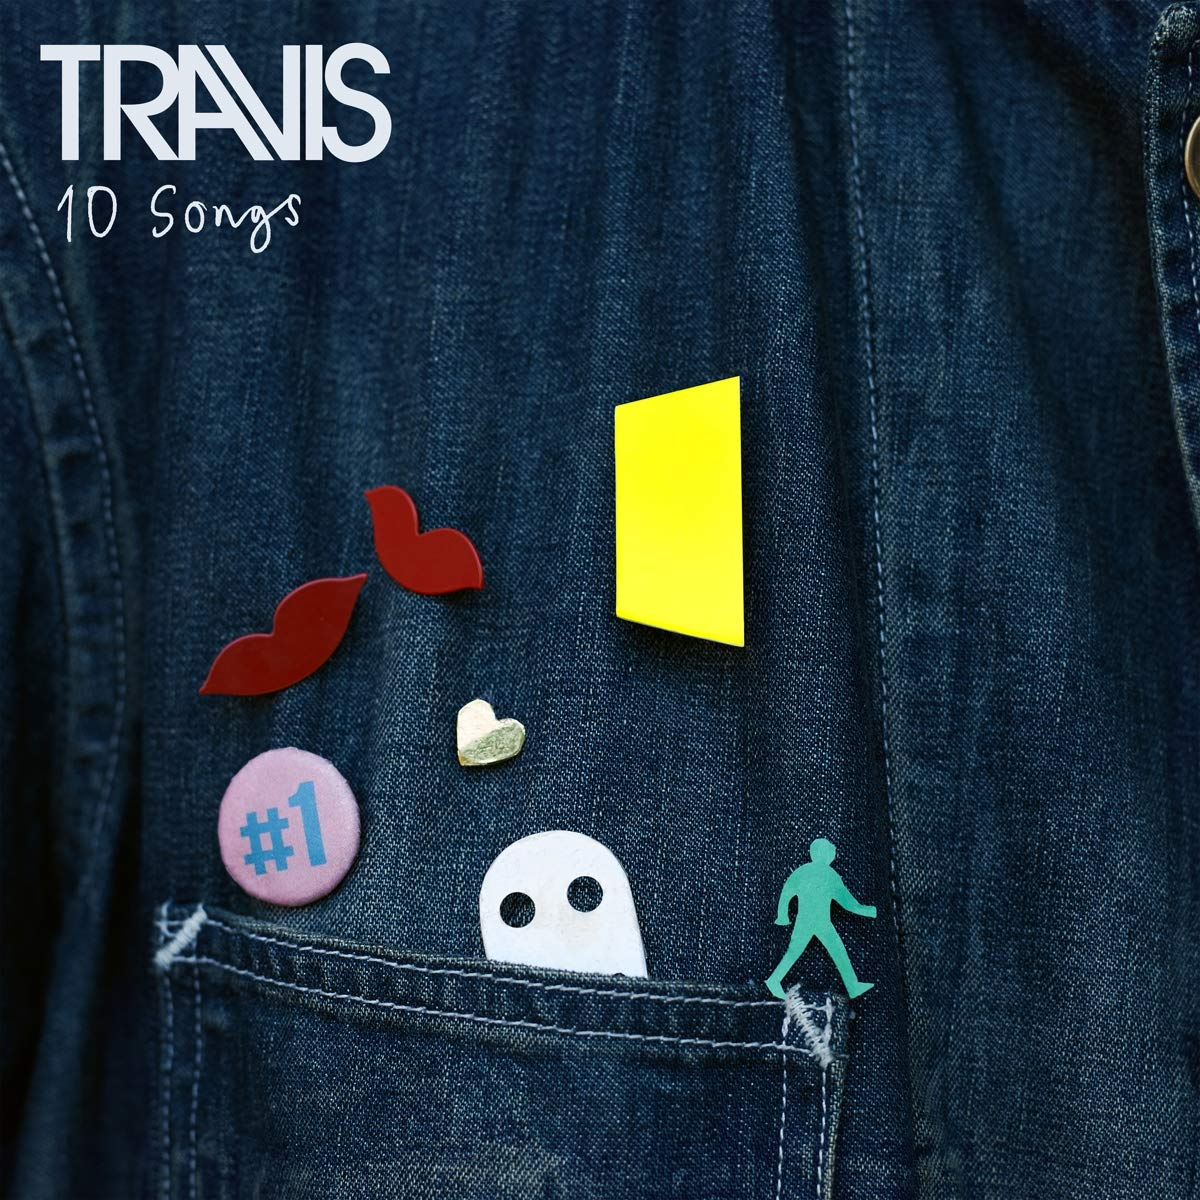 Travis - 10 Songs [Indie Exclusive Limited Edition Deluxe Red & Blue 2LP]